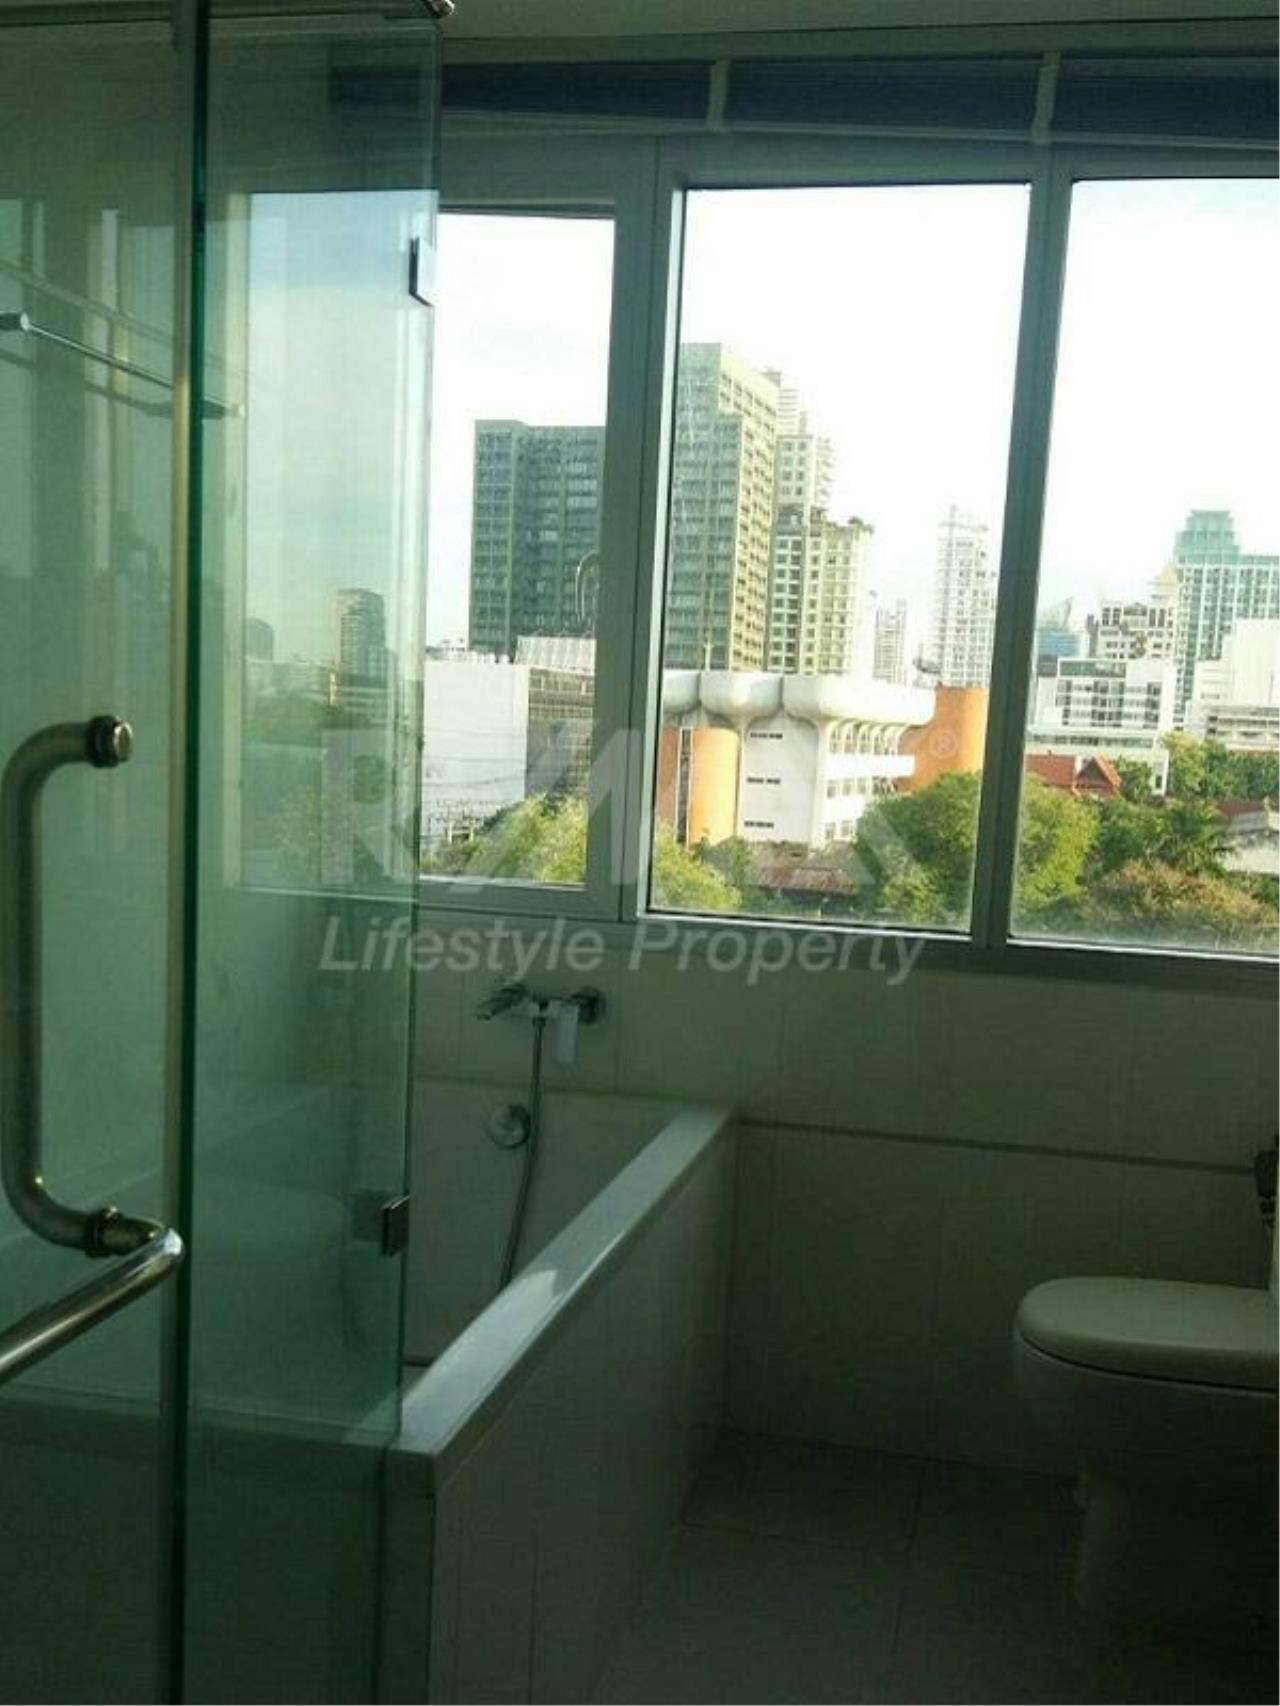 RE/MAX LifeStyle Property Agency's Thru Thonglor 10